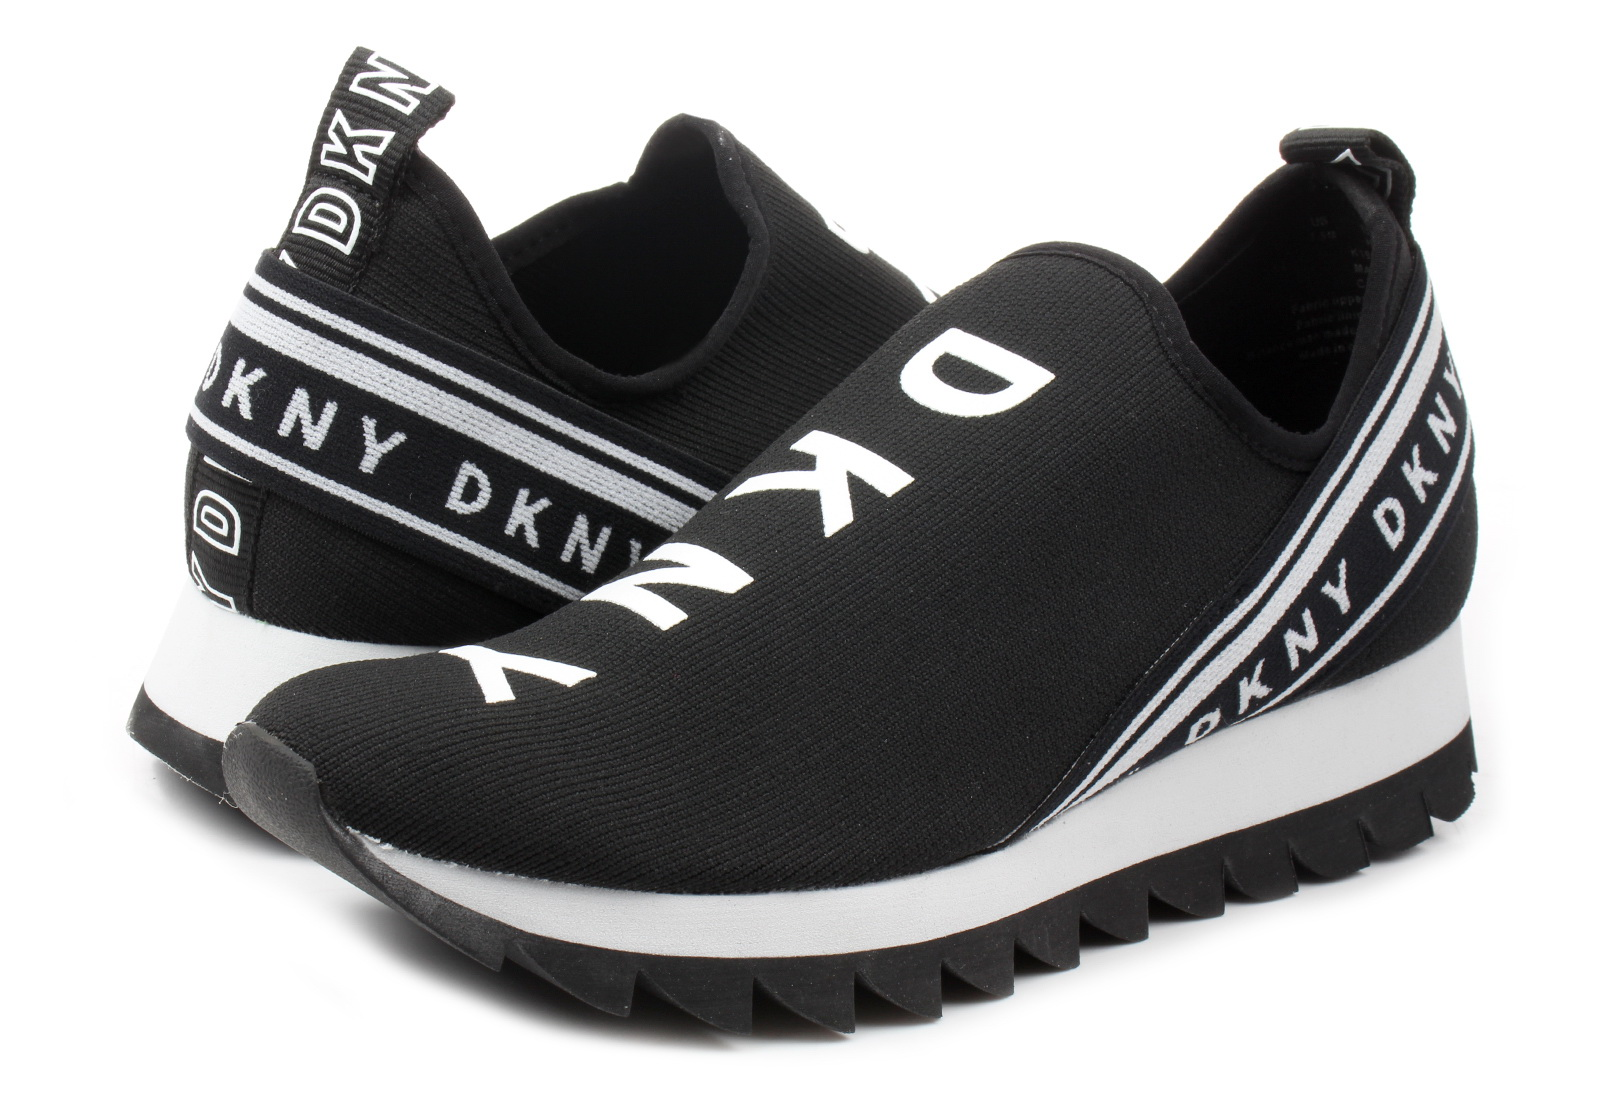 a83deaee0 DKNY Shoes - Abbi - K1966559-blk - Online shop for sneakers, shoes ...